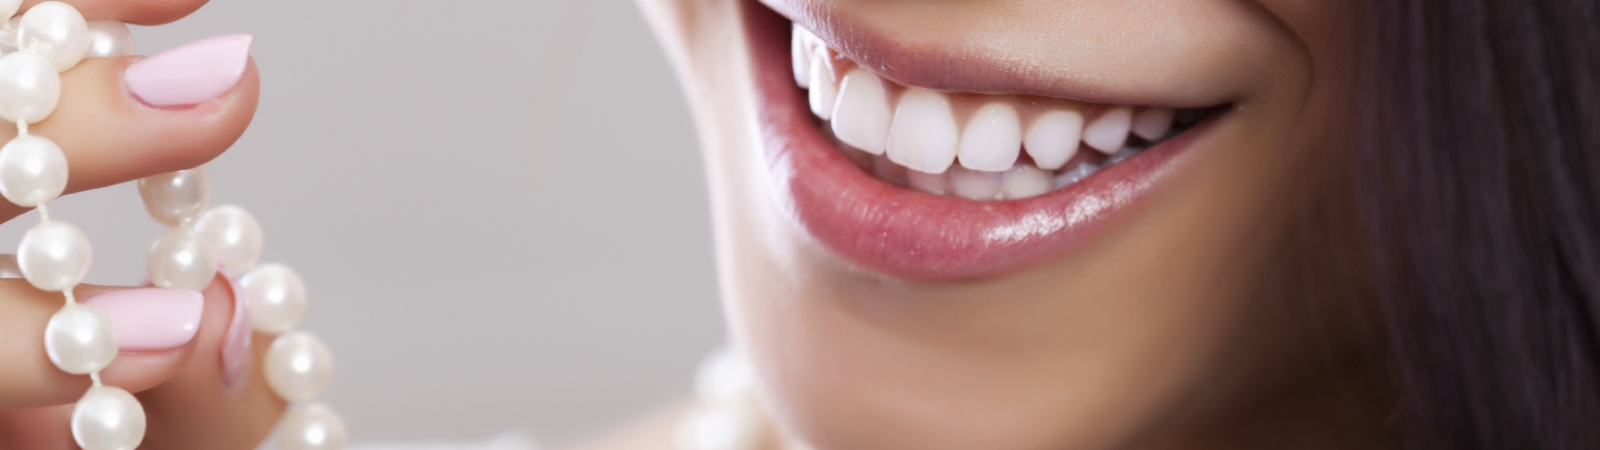 Tooth whitening at Concord dental practice